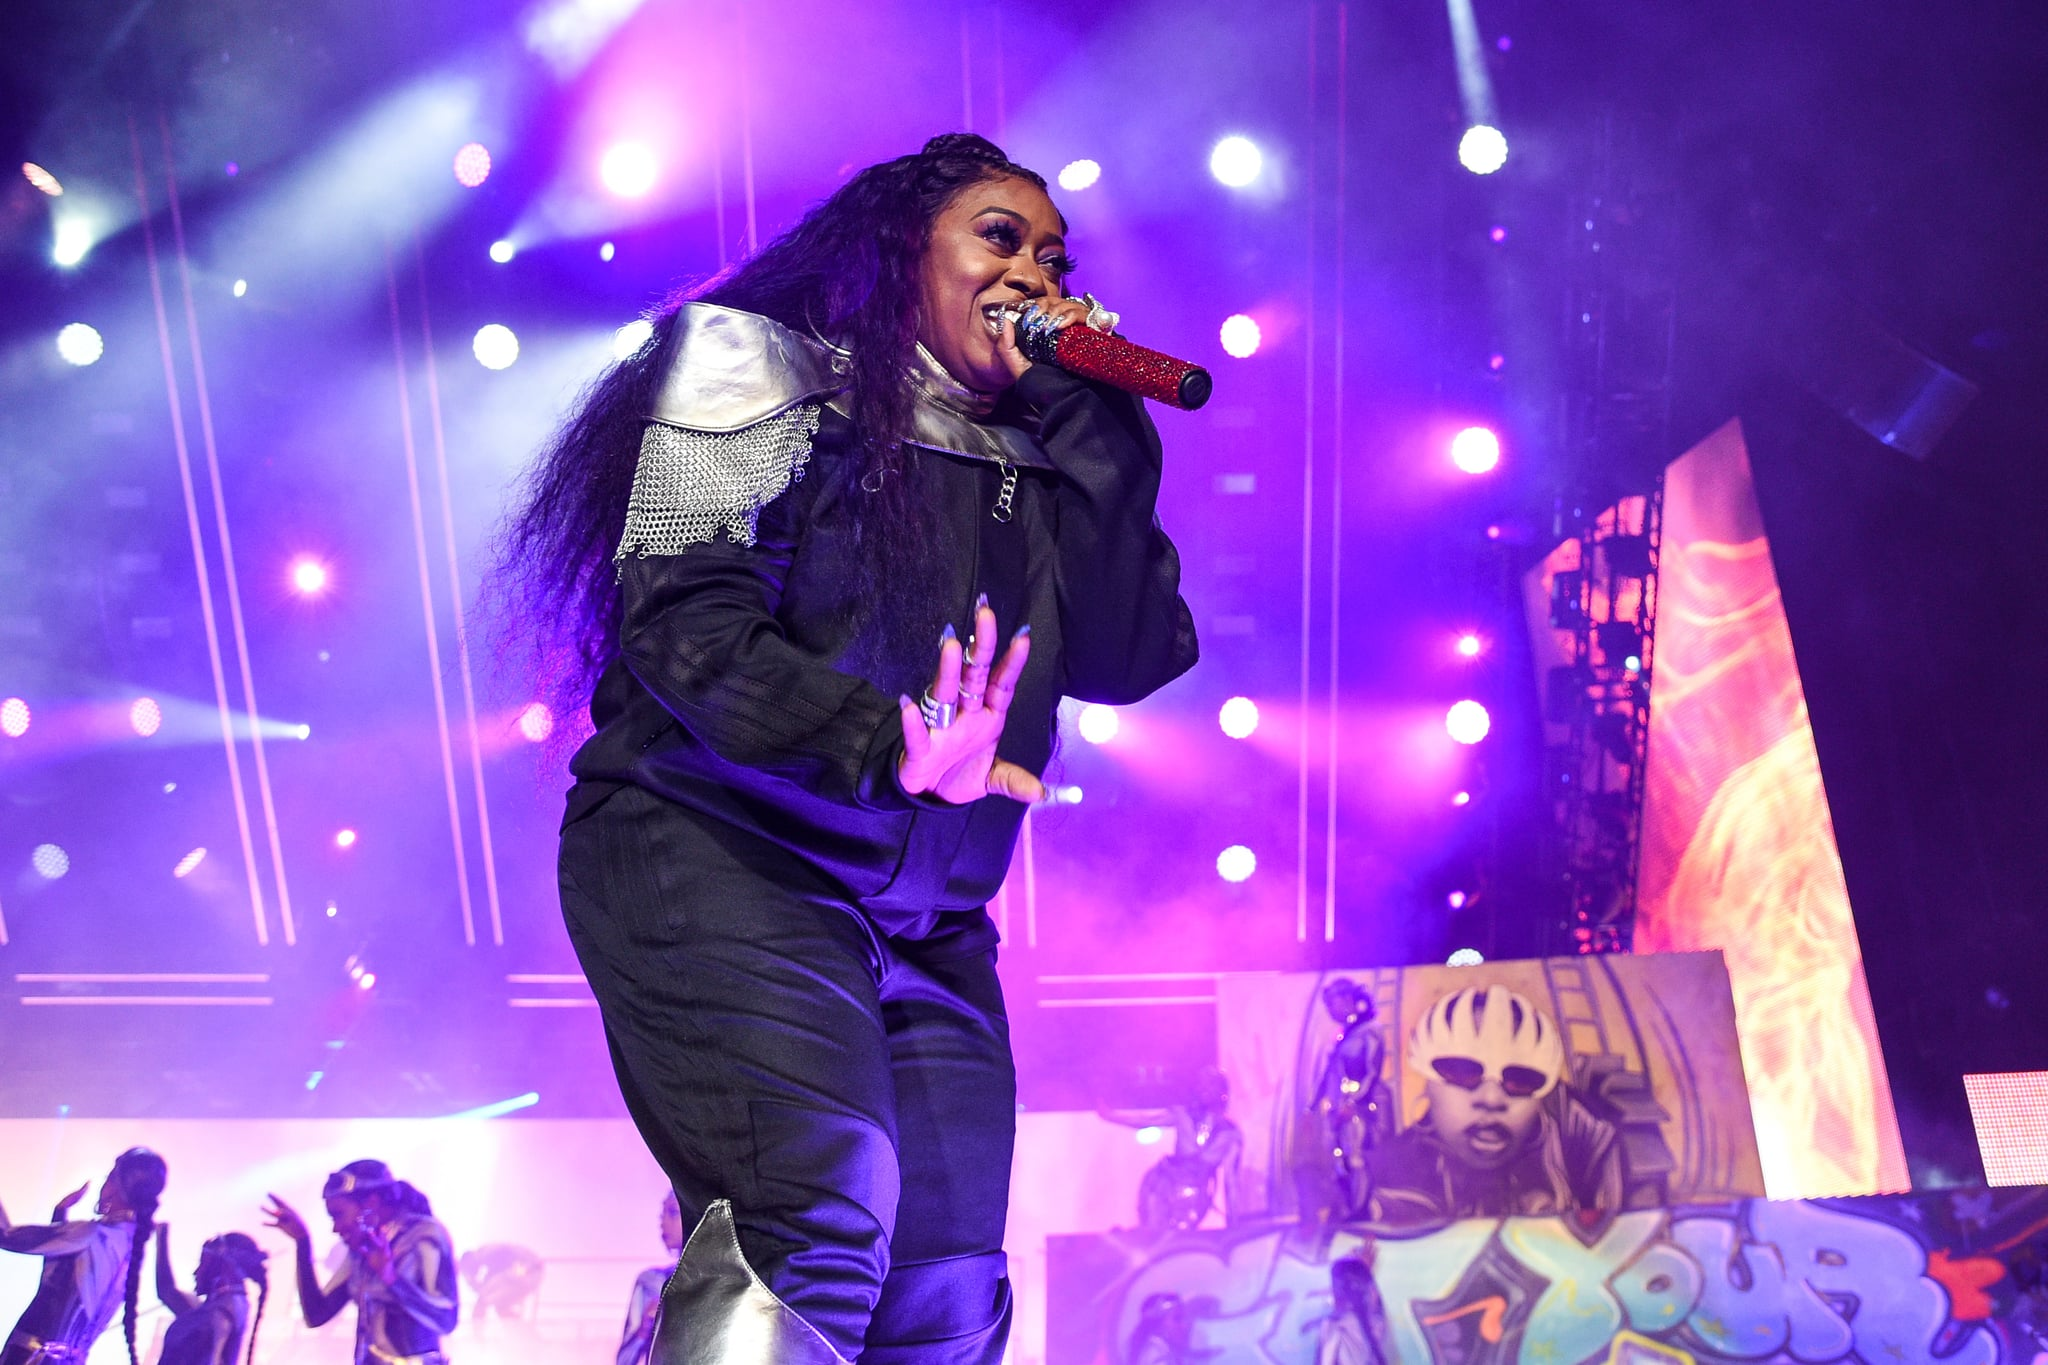 NEW ORLEANS, LOUISIANA - JULY 05: Missy Elliott performs during the 2019 ESSENCE Festival at the Mercedes-Benz Superdome on July 05, 2019 in New Orleans, Louisiana. (Photo by Erika Goldring/Getty Images)